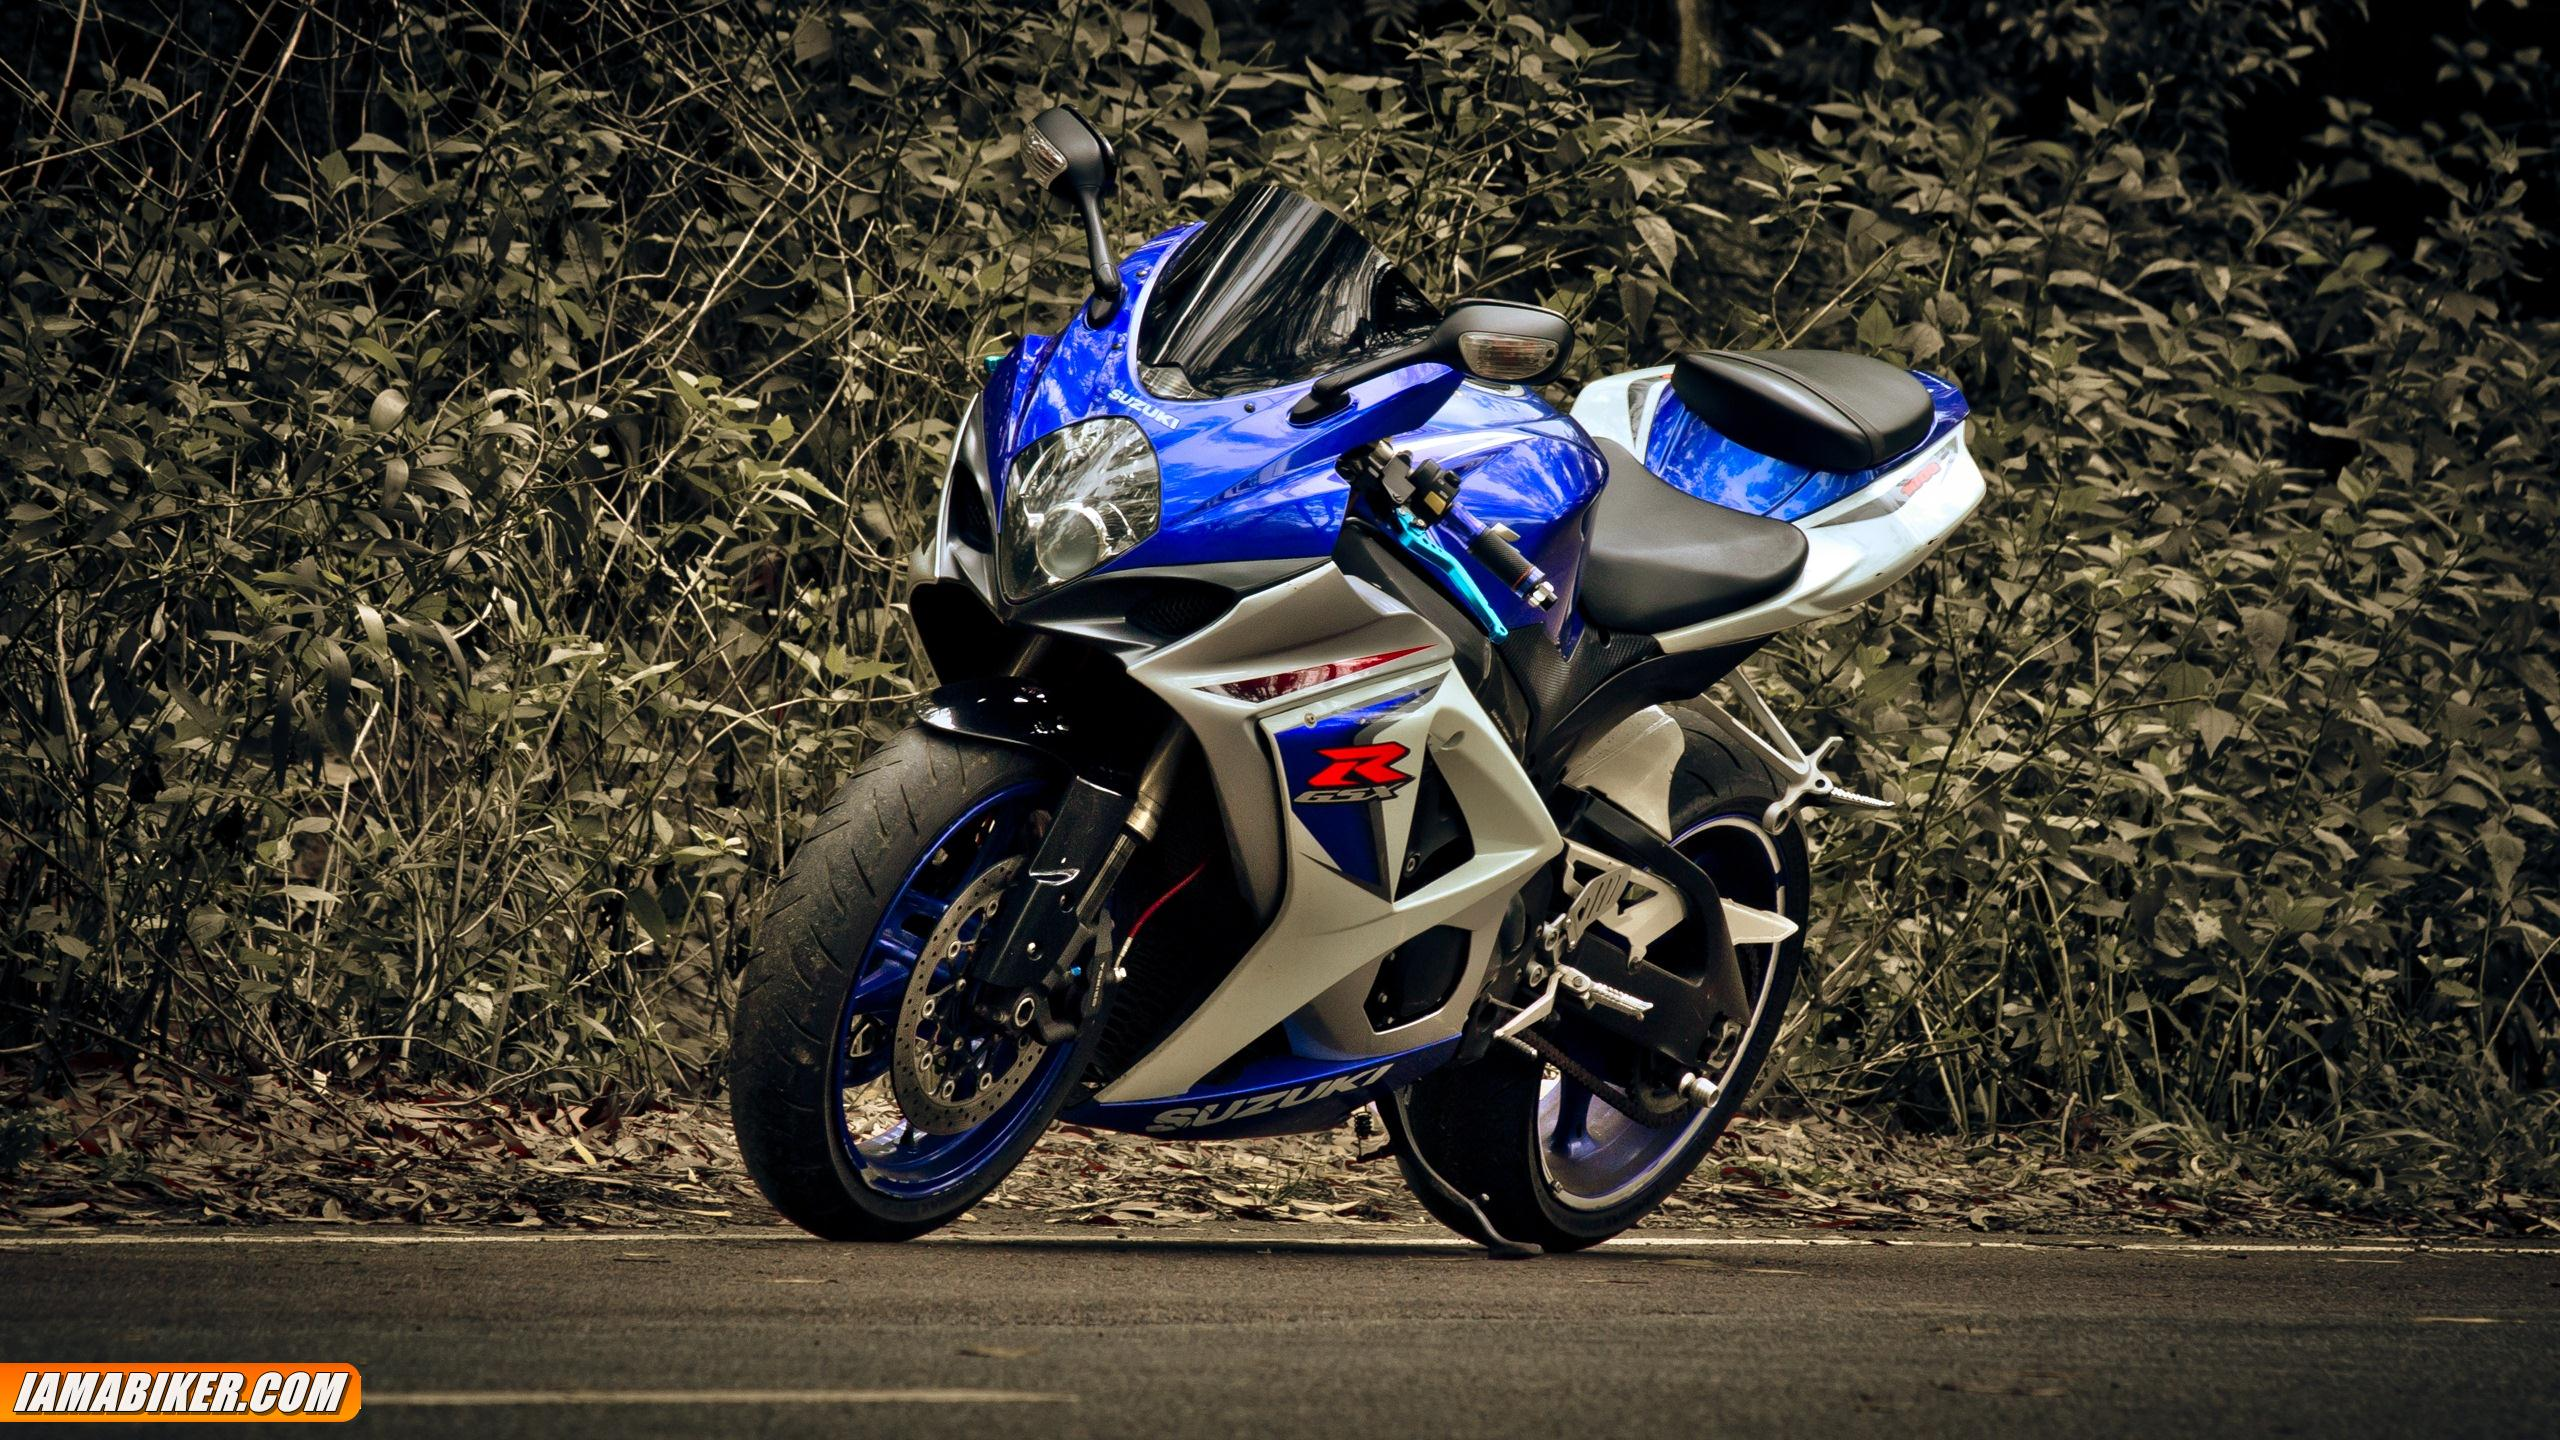 suzuki gsx r 600 gsx r 1000 hd wallpapers. Black Bedroom Furniture Sets. Home Design Ideas